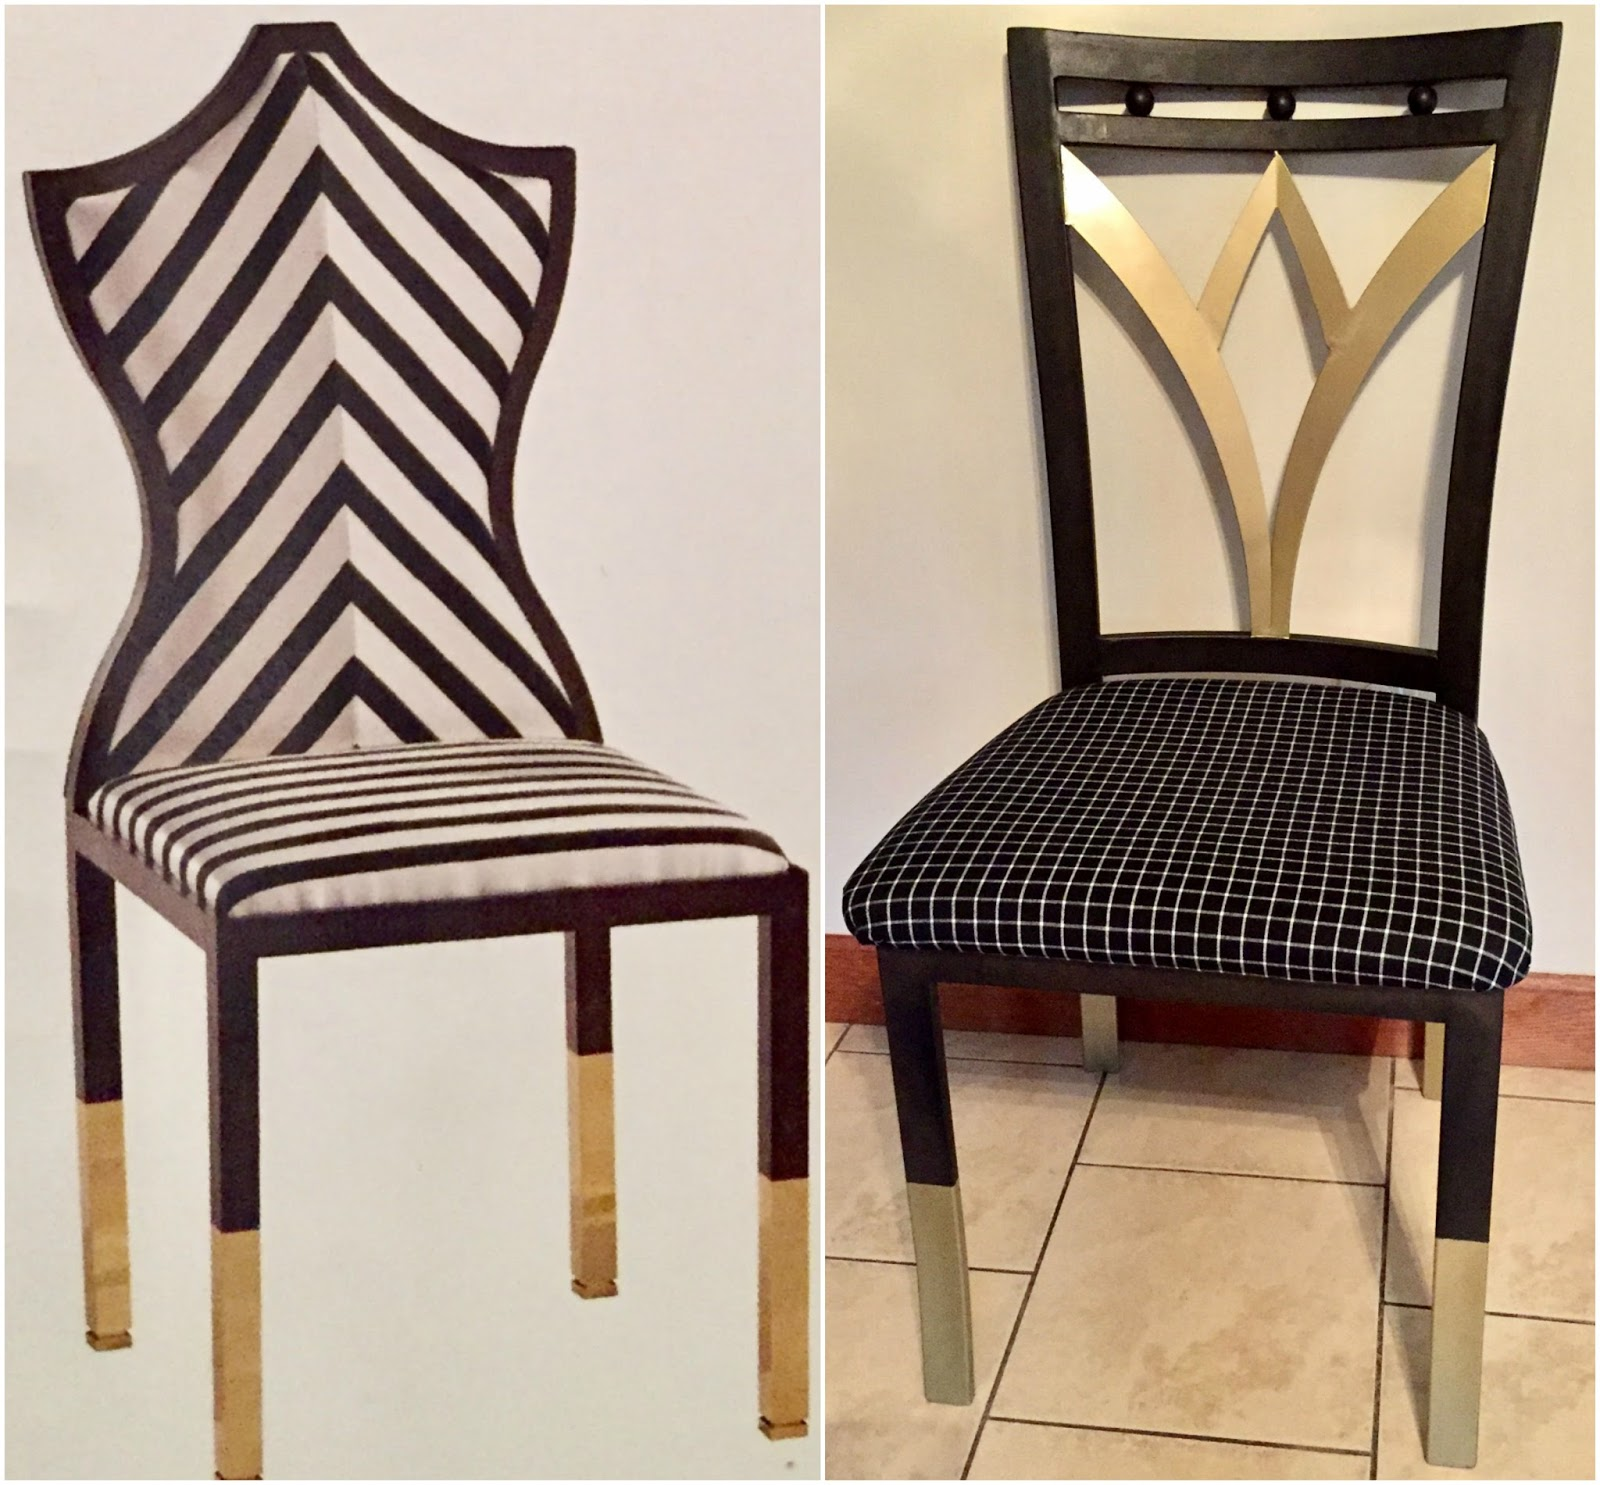 diy dining chairs makeover american diner table and beauty101bylisa project chair